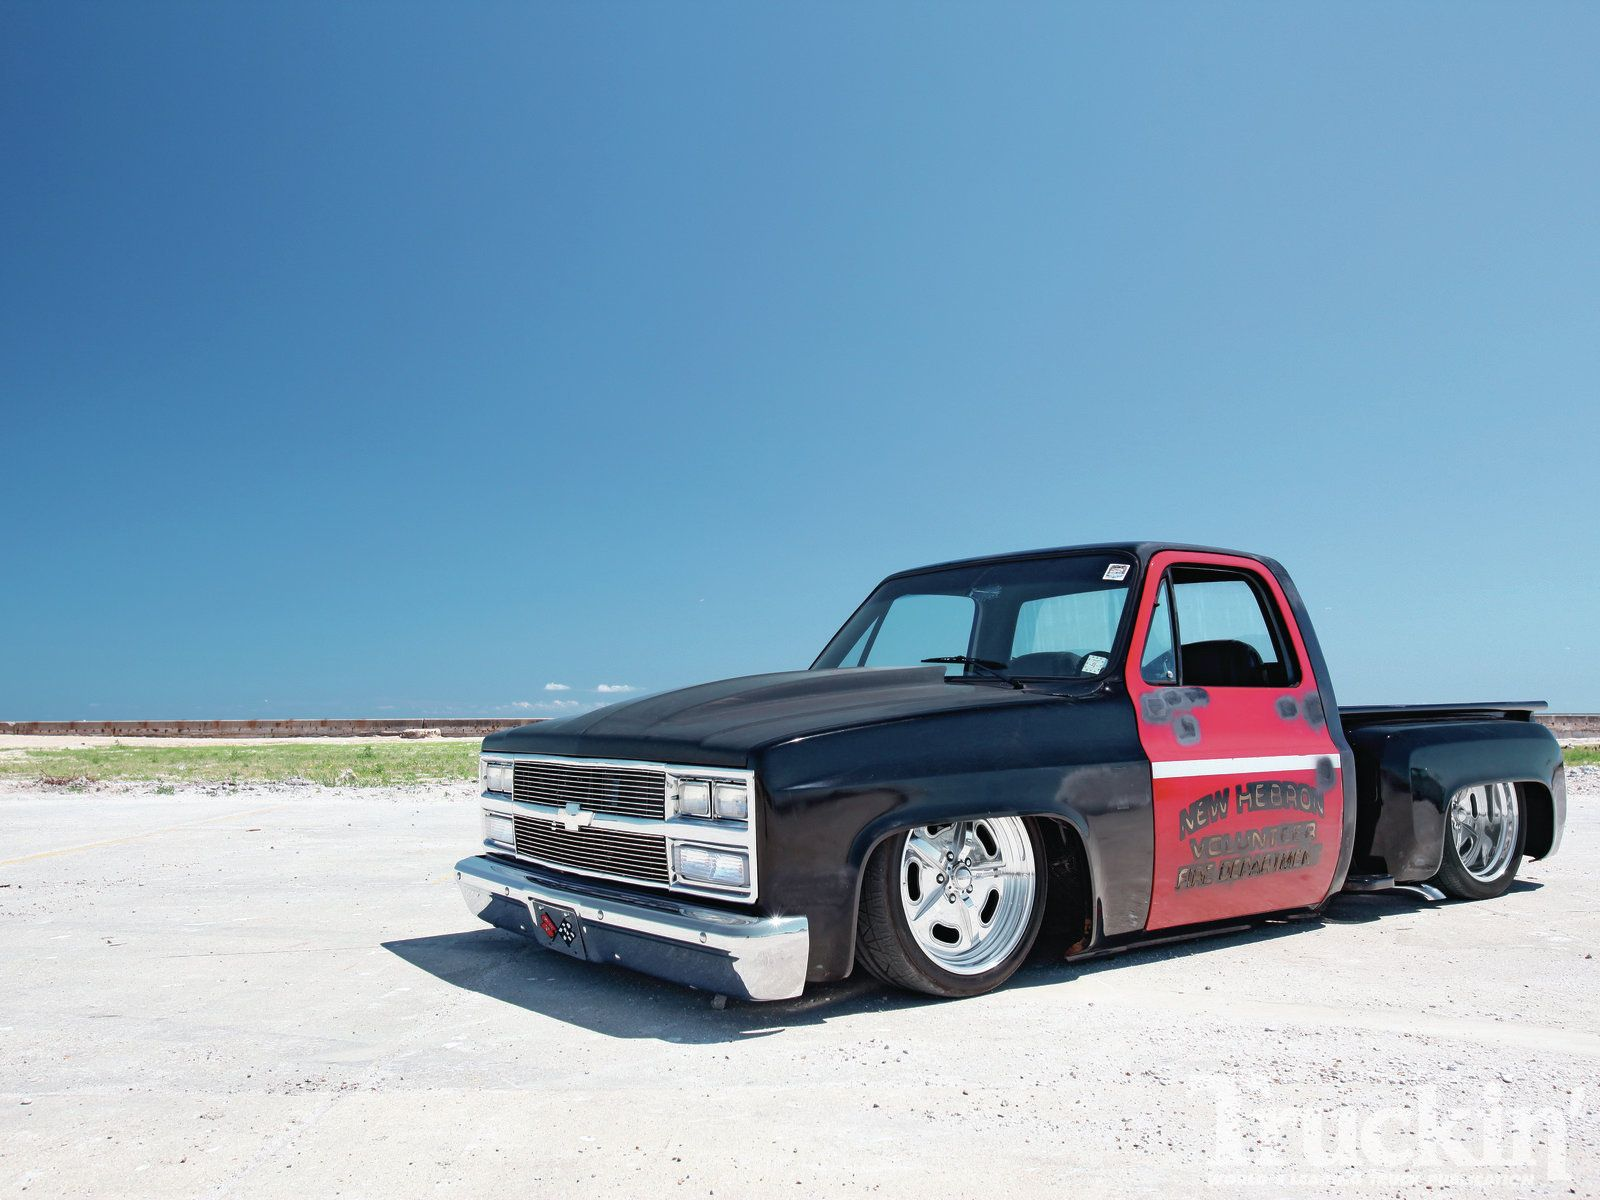 medium resolution of busted knuckles 1981 chevy c10 stepside front angle photo 1